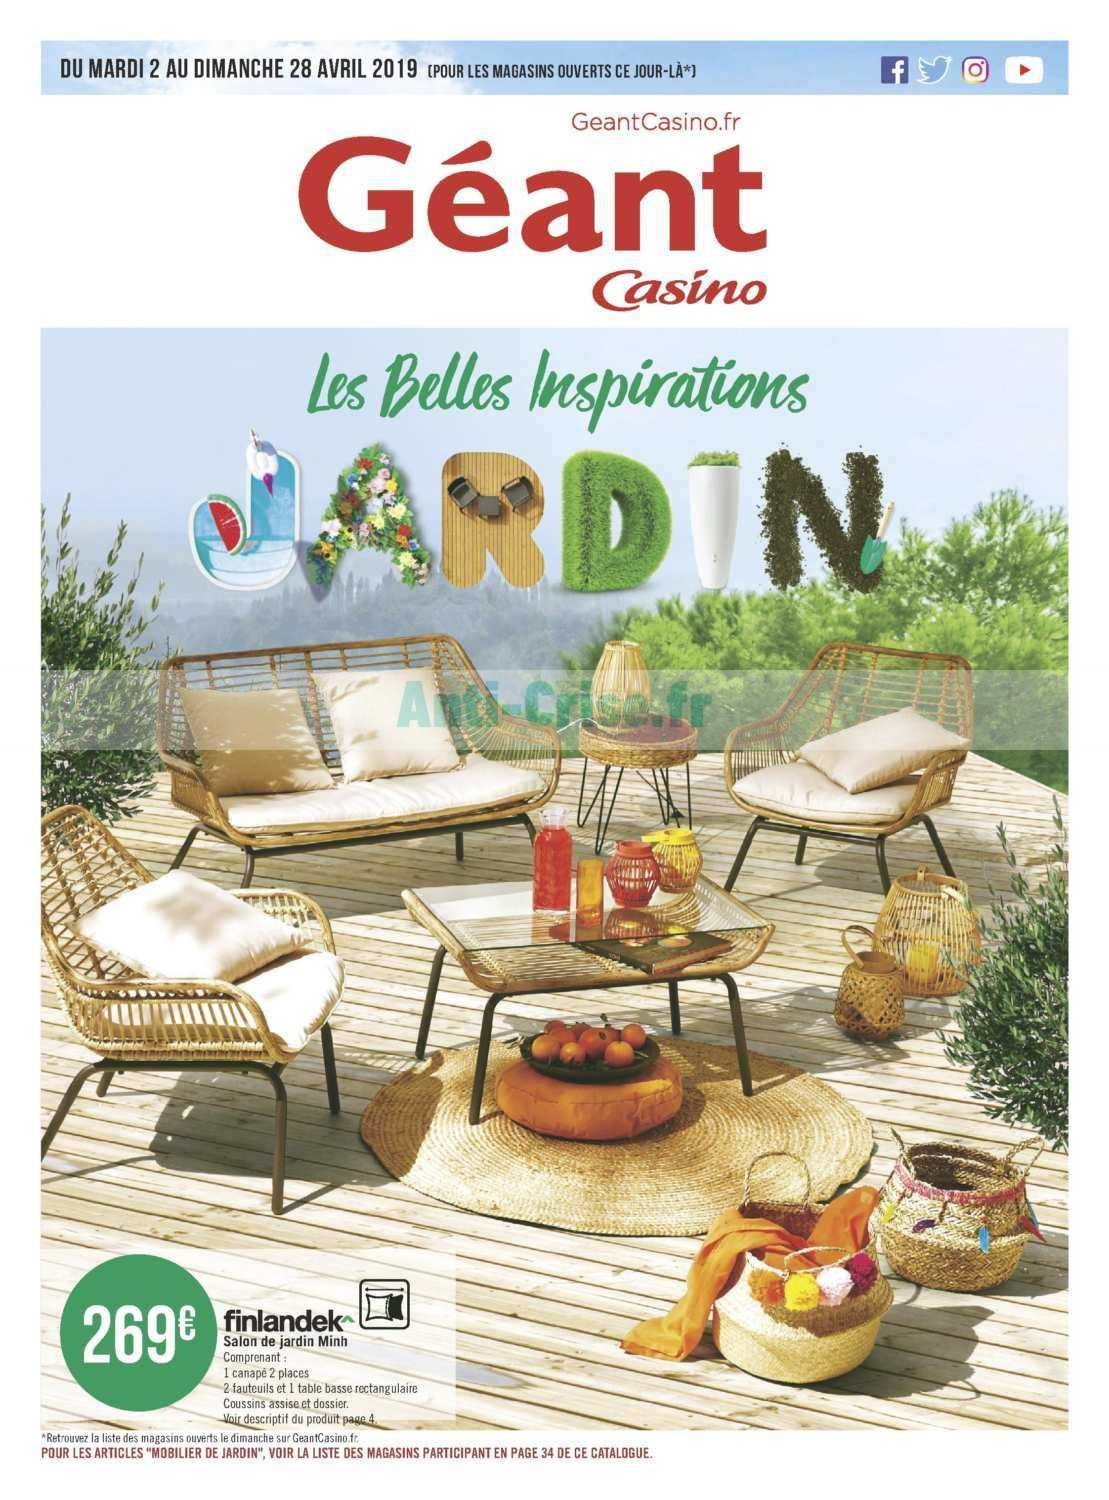 Table De Jardin Geant Casino Salon De Jardin Geant Casino 2019 The Best Undercut Ponytail Encequiconcerne Table De Jardin Geant Casino Check More At Https Di 2020